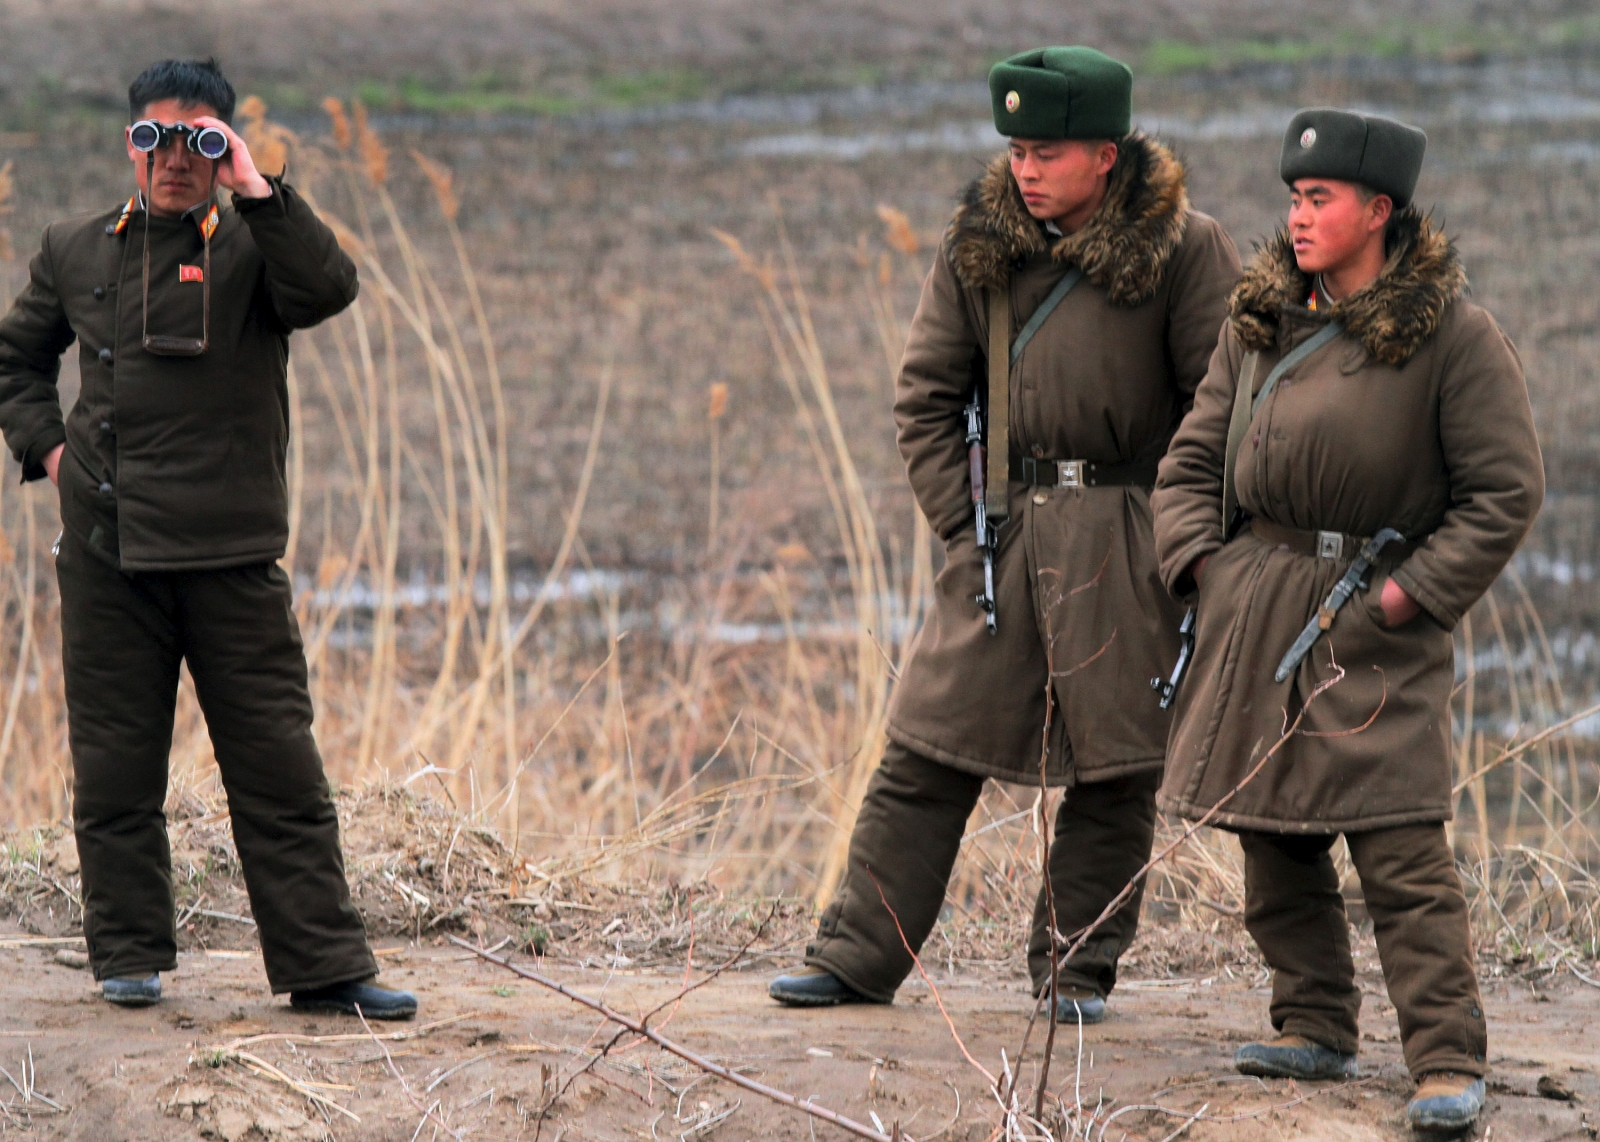 North Korea soldier defects